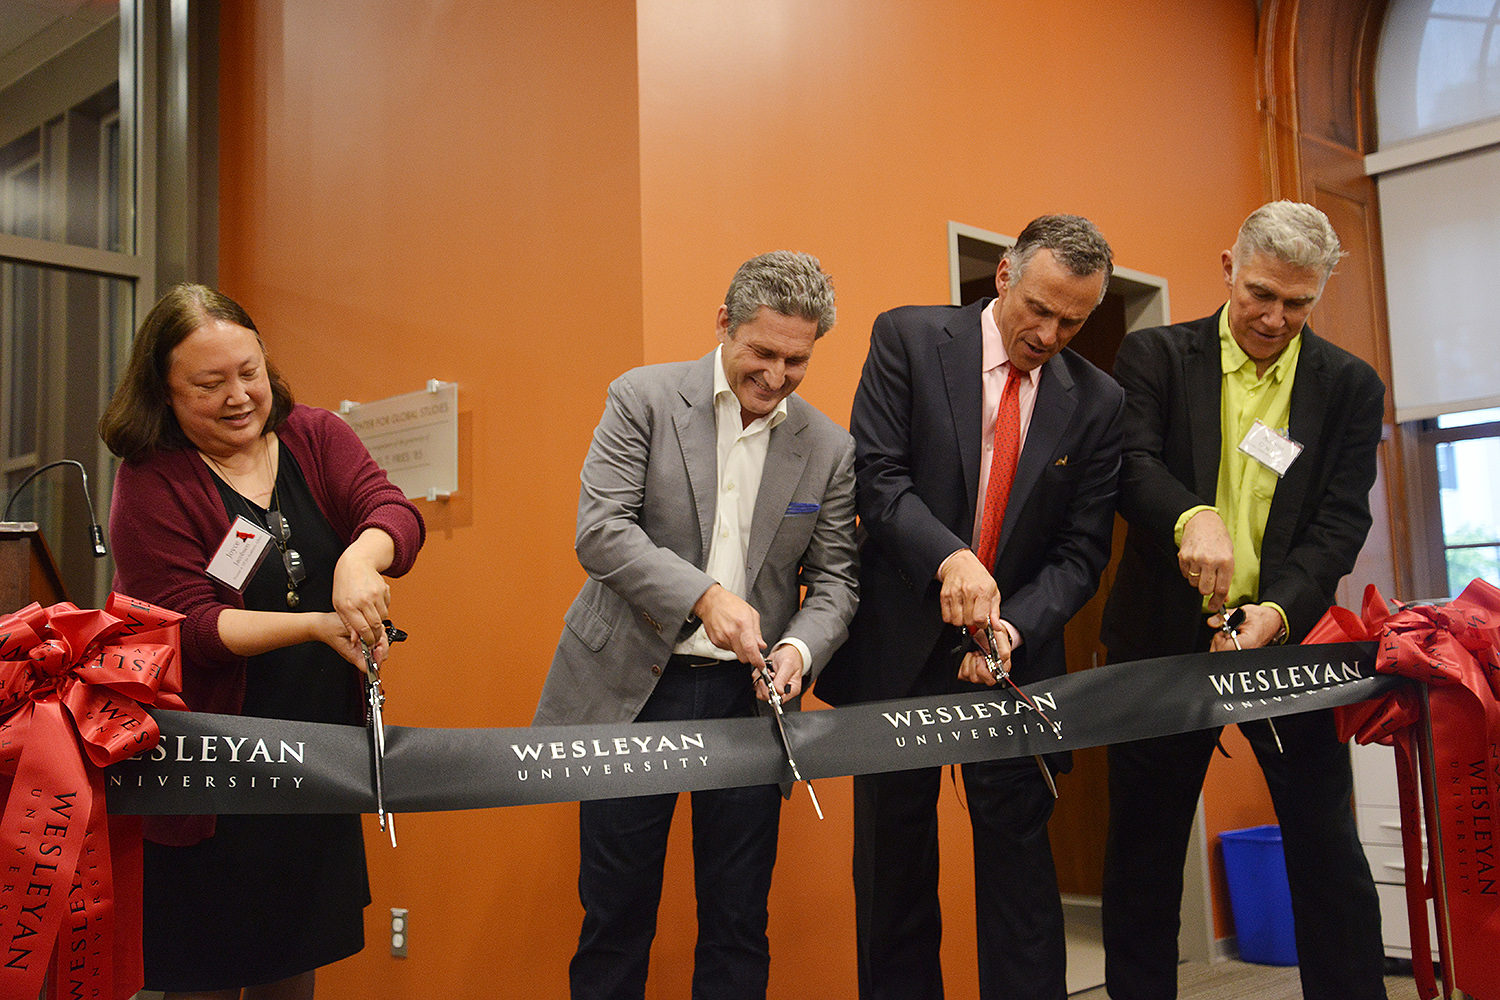 Provost Joyce Jacobsen, Michael Fries '85, Wesleyan President Michael Roth '78 and Professor Antonio Gonzalez participated in a ribbon-cutting ceremony May 25 at the Fries Center for Global Studies.